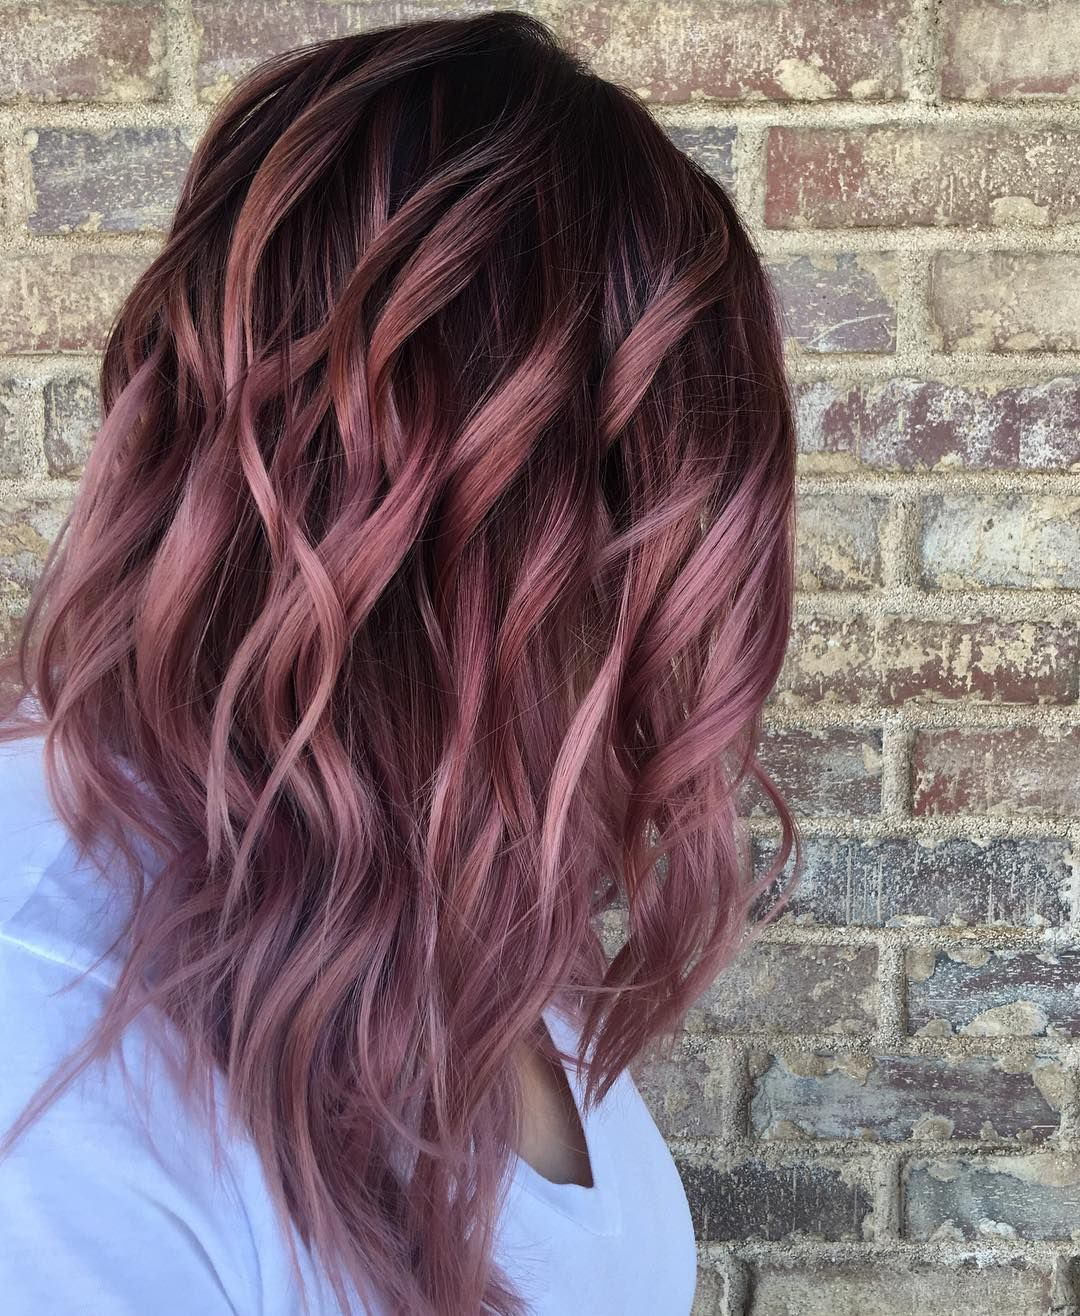 7 Ways To Rock Pantones Fall 2016 Colors In Your Hair Fall 2016